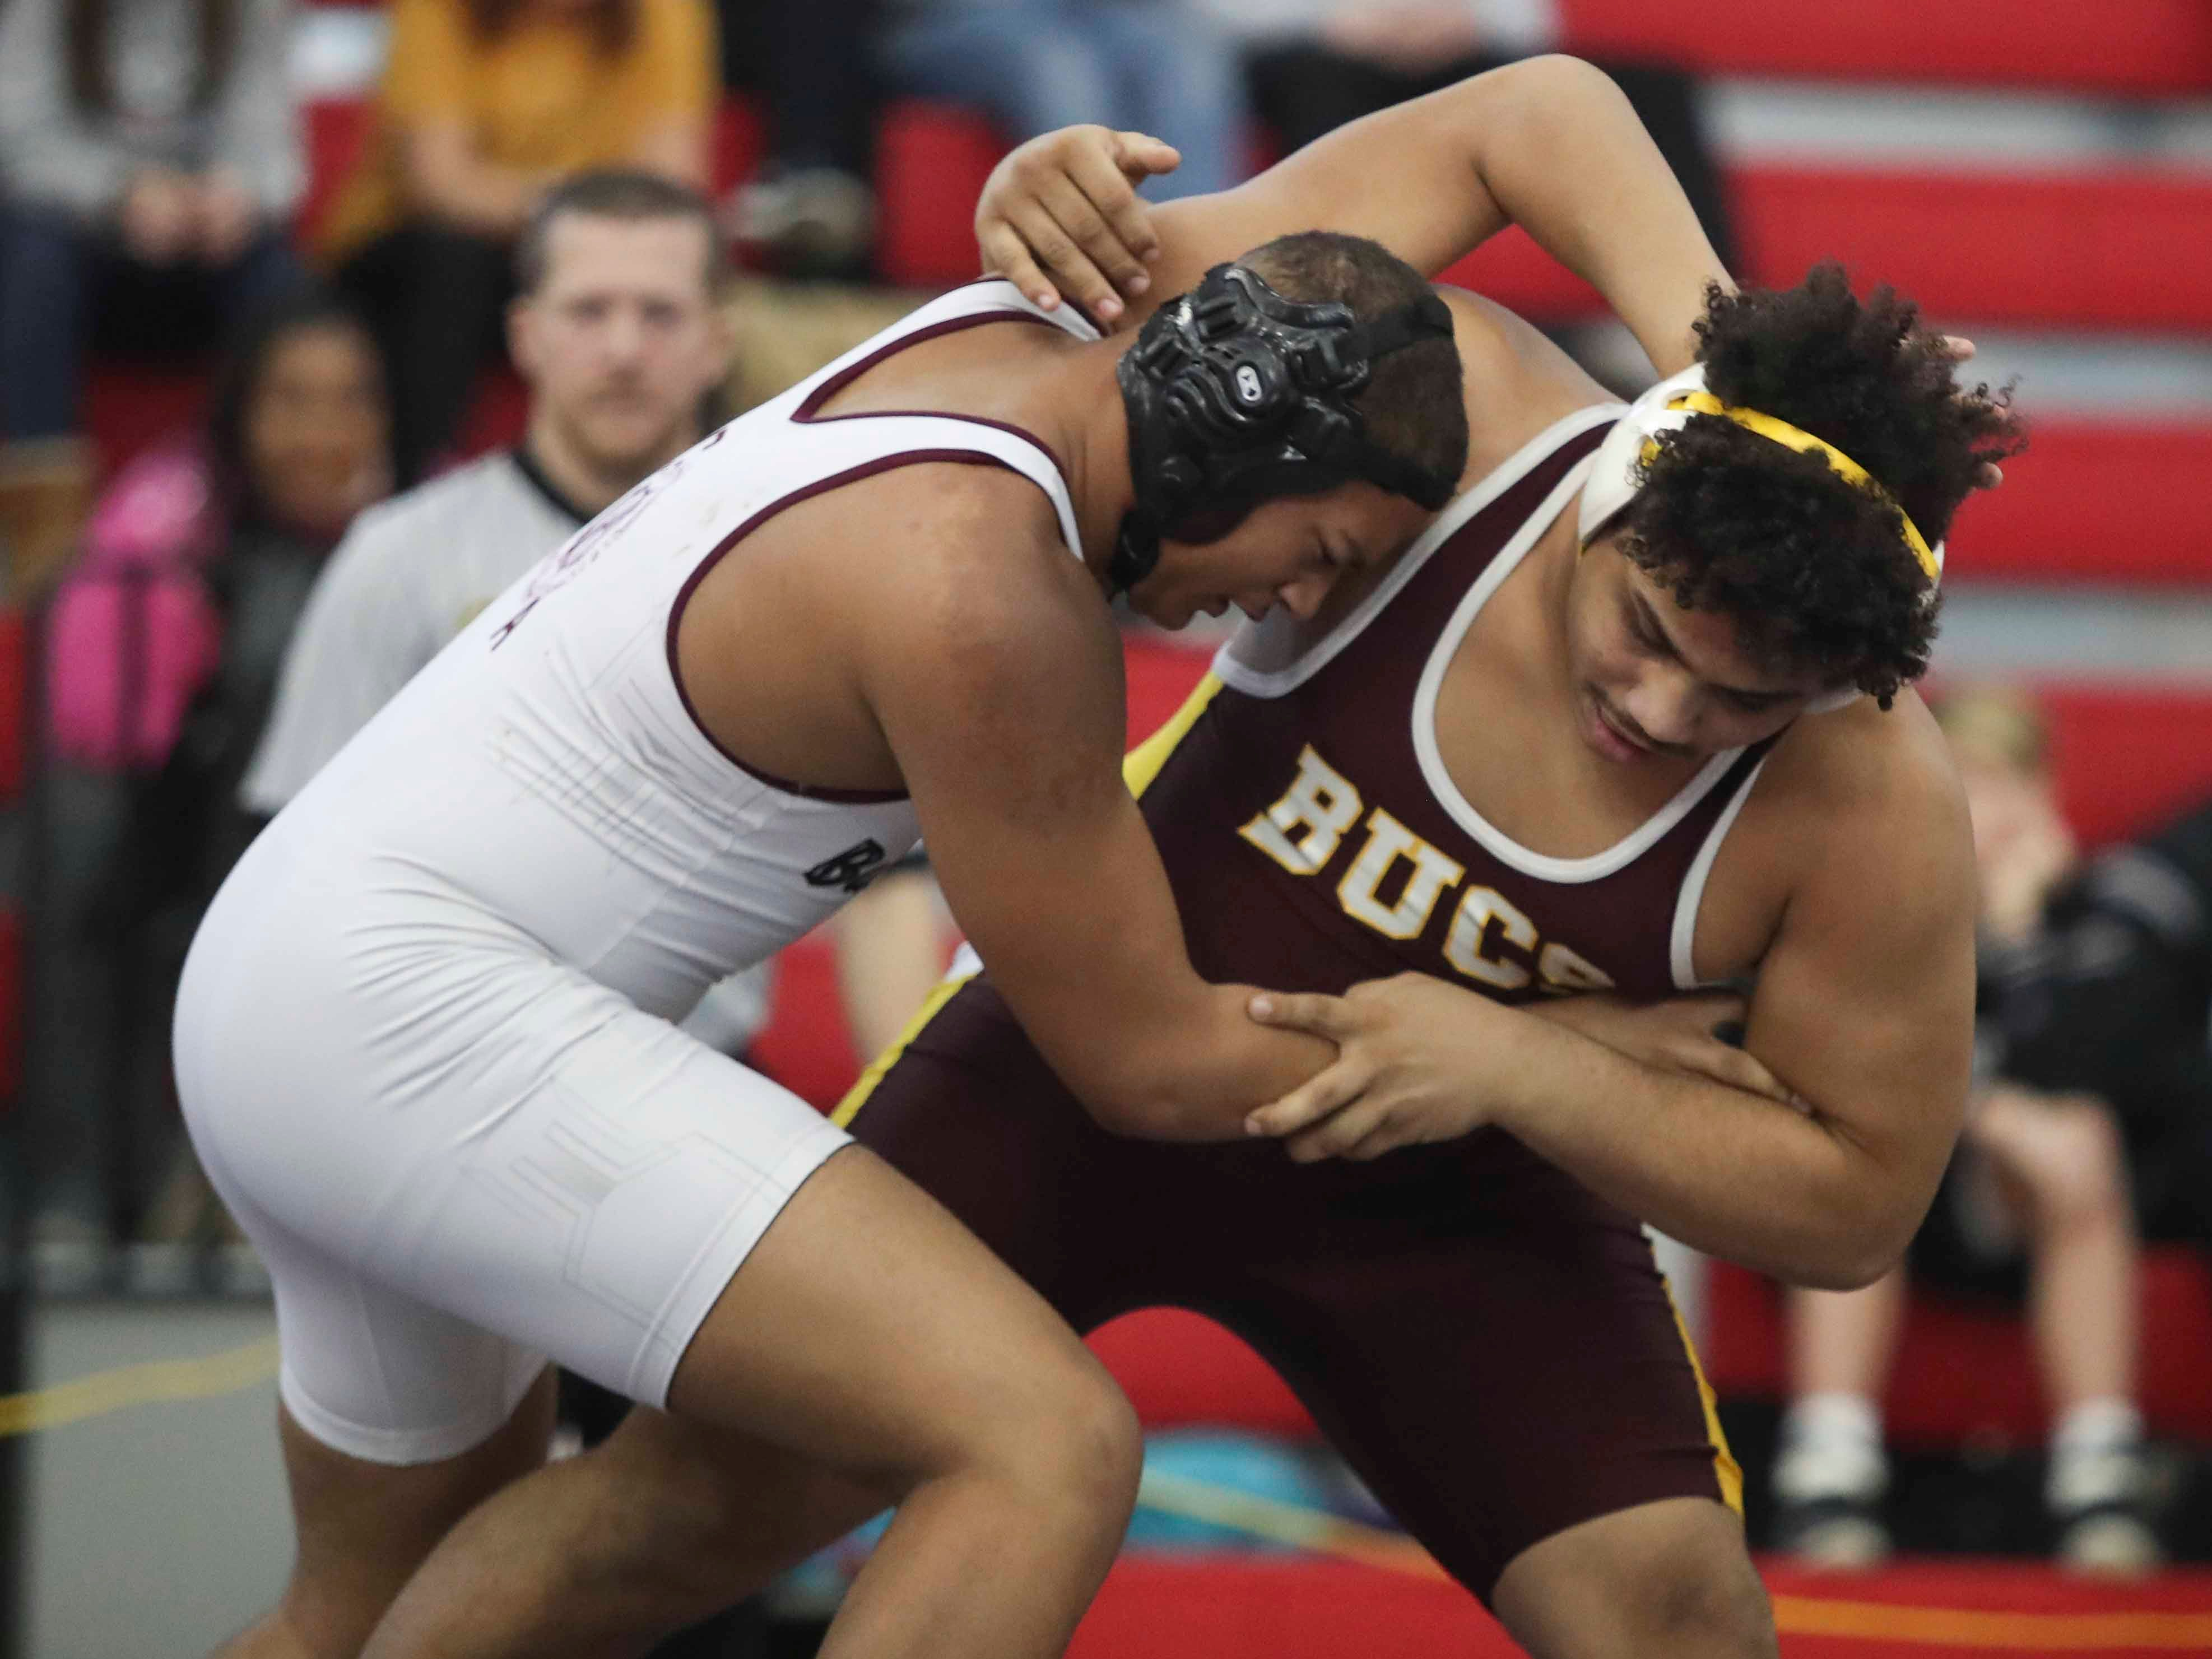 Milford's Anthony Diaz (right) gets a win against Caravel's A.J. Smith in the DIAA Division II dual meet championships Saturday at Smyrna High School.